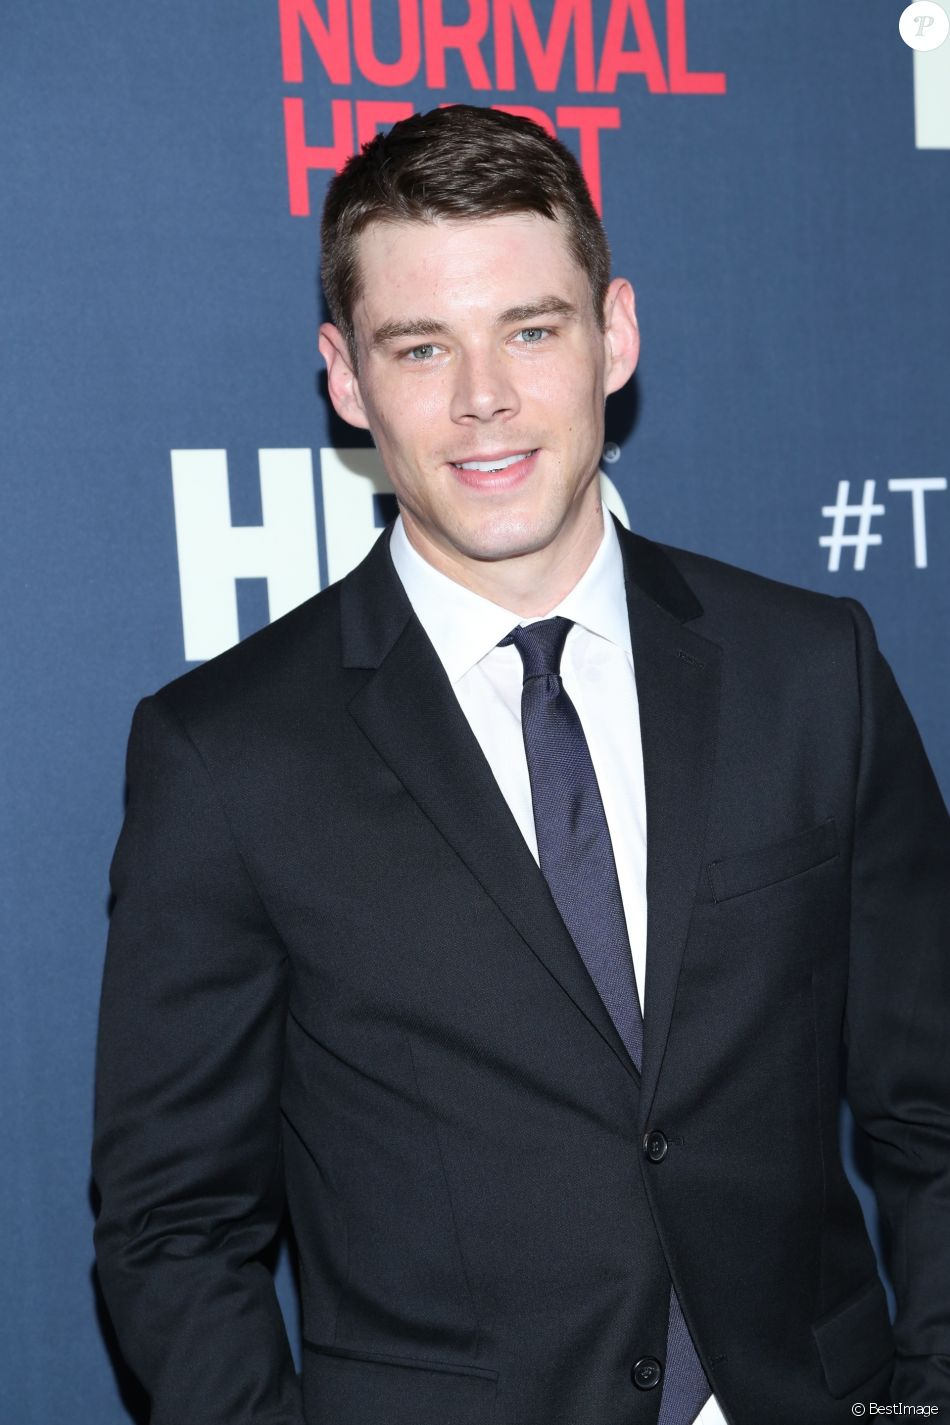 """Brian J. Smith lors de la première du film """"The Normal Heart"""" à New York, le 12 mai 2014.  Celebrities at the New York premiere 'The Normal Heart' at the Ziegfield Theater in New York City, New York on May 12, 2014.12/05/2014 - New York"""